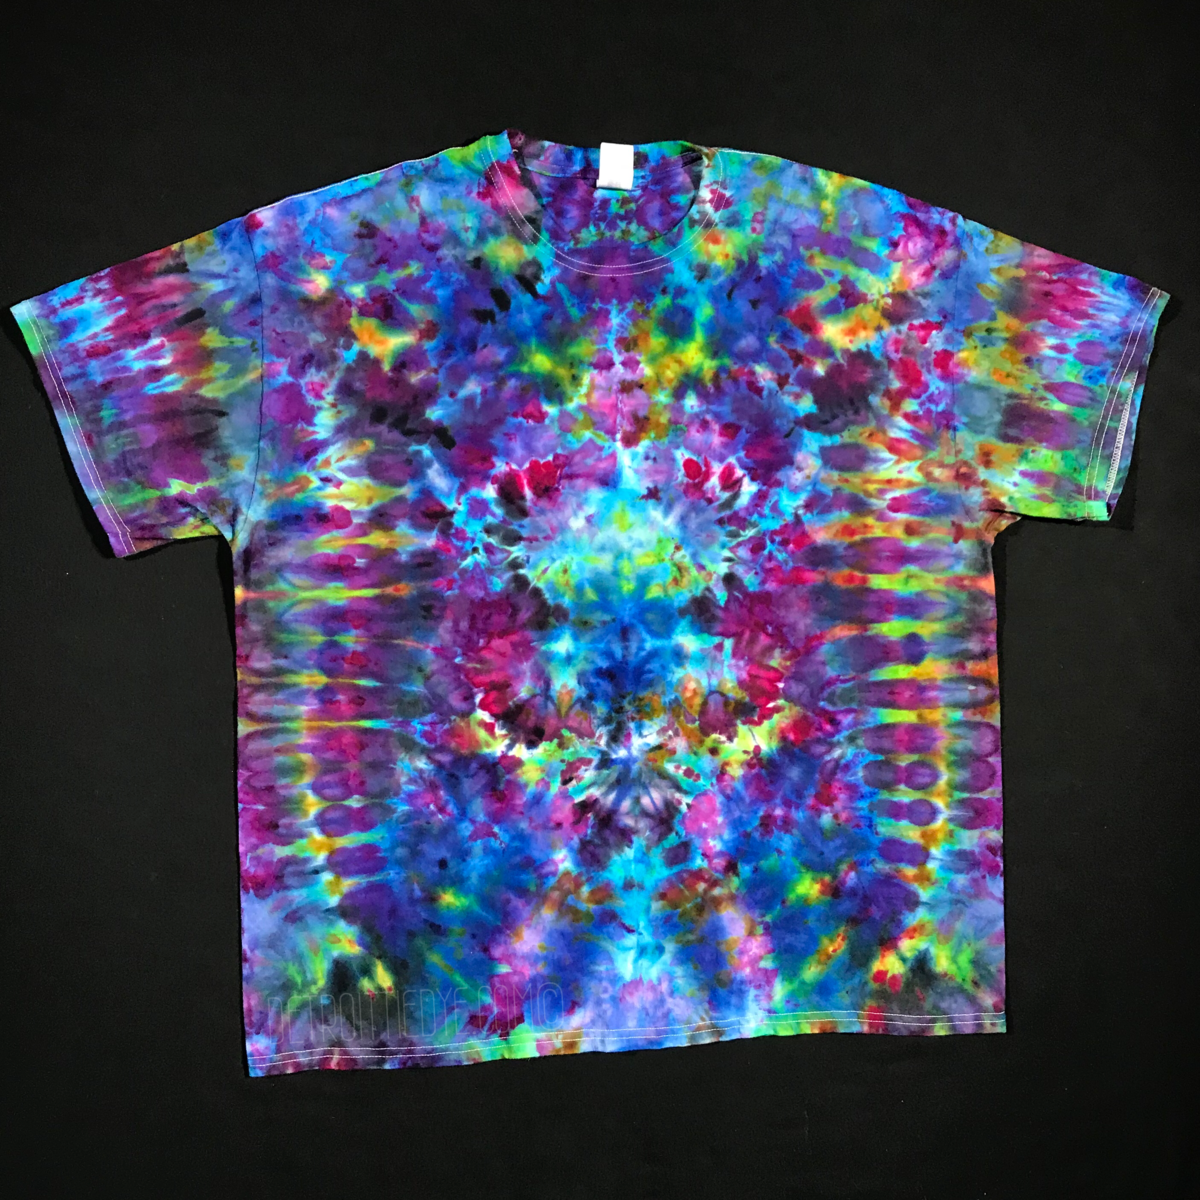 88e818c2e738 Size 2XL Psychedelic Symmetry Ice Dye T-Shirt – Detroit Tie Dye Co.